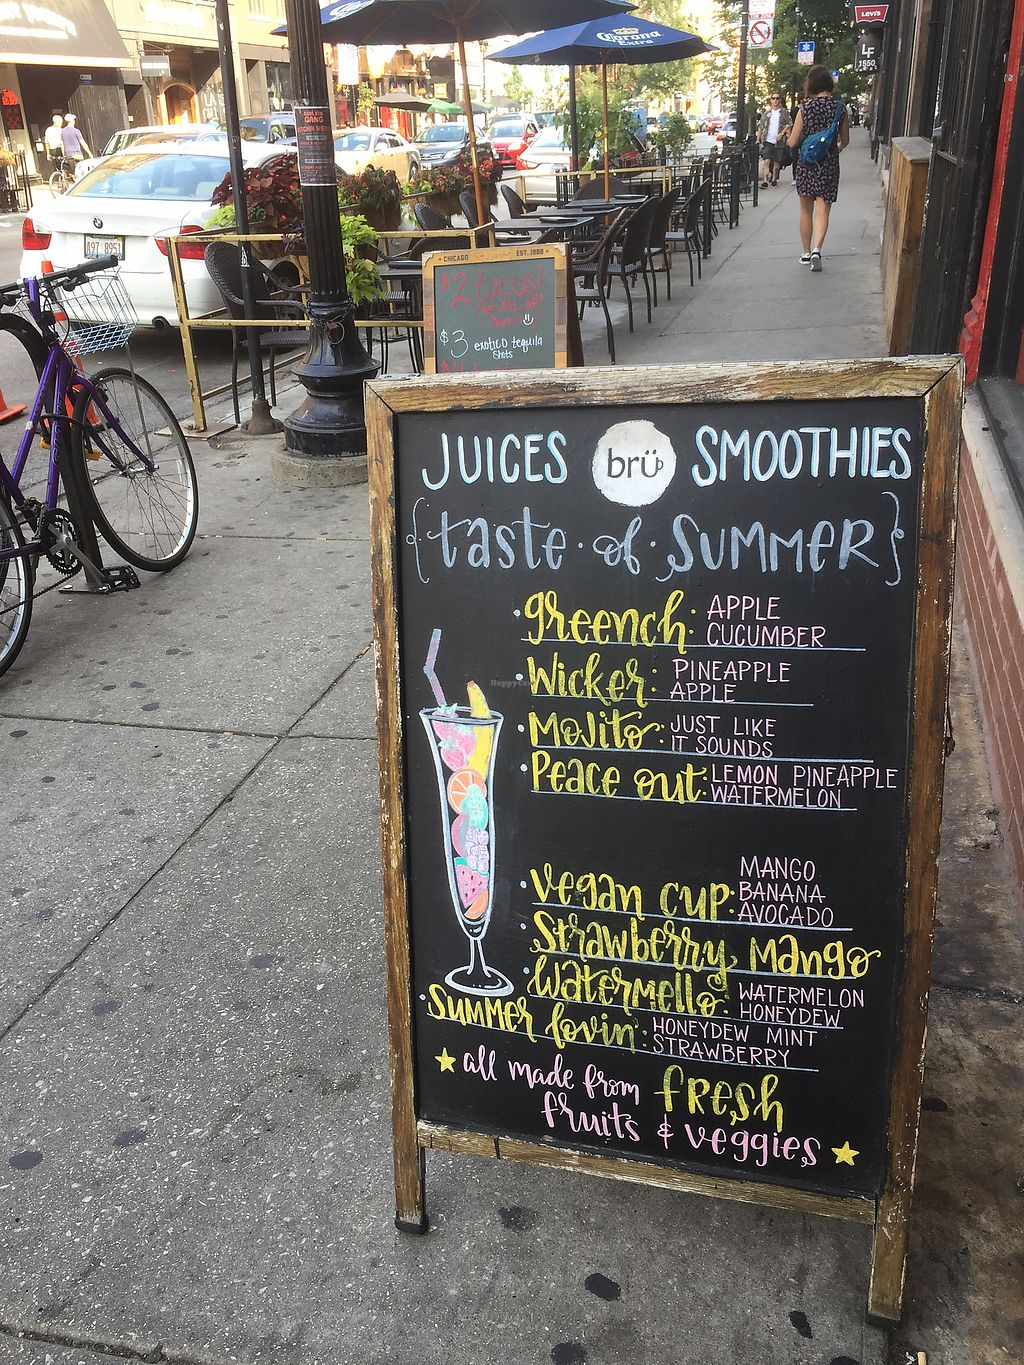 """Photo of Brü Chicago  by <a href=""""/members/profile/happycowgirl"""">happycowgirl</a> <br/>juices and smoothies <br/> August 16, 2017  - <a href='/contact/abuse/image/92645/293116'>Report</a>"""